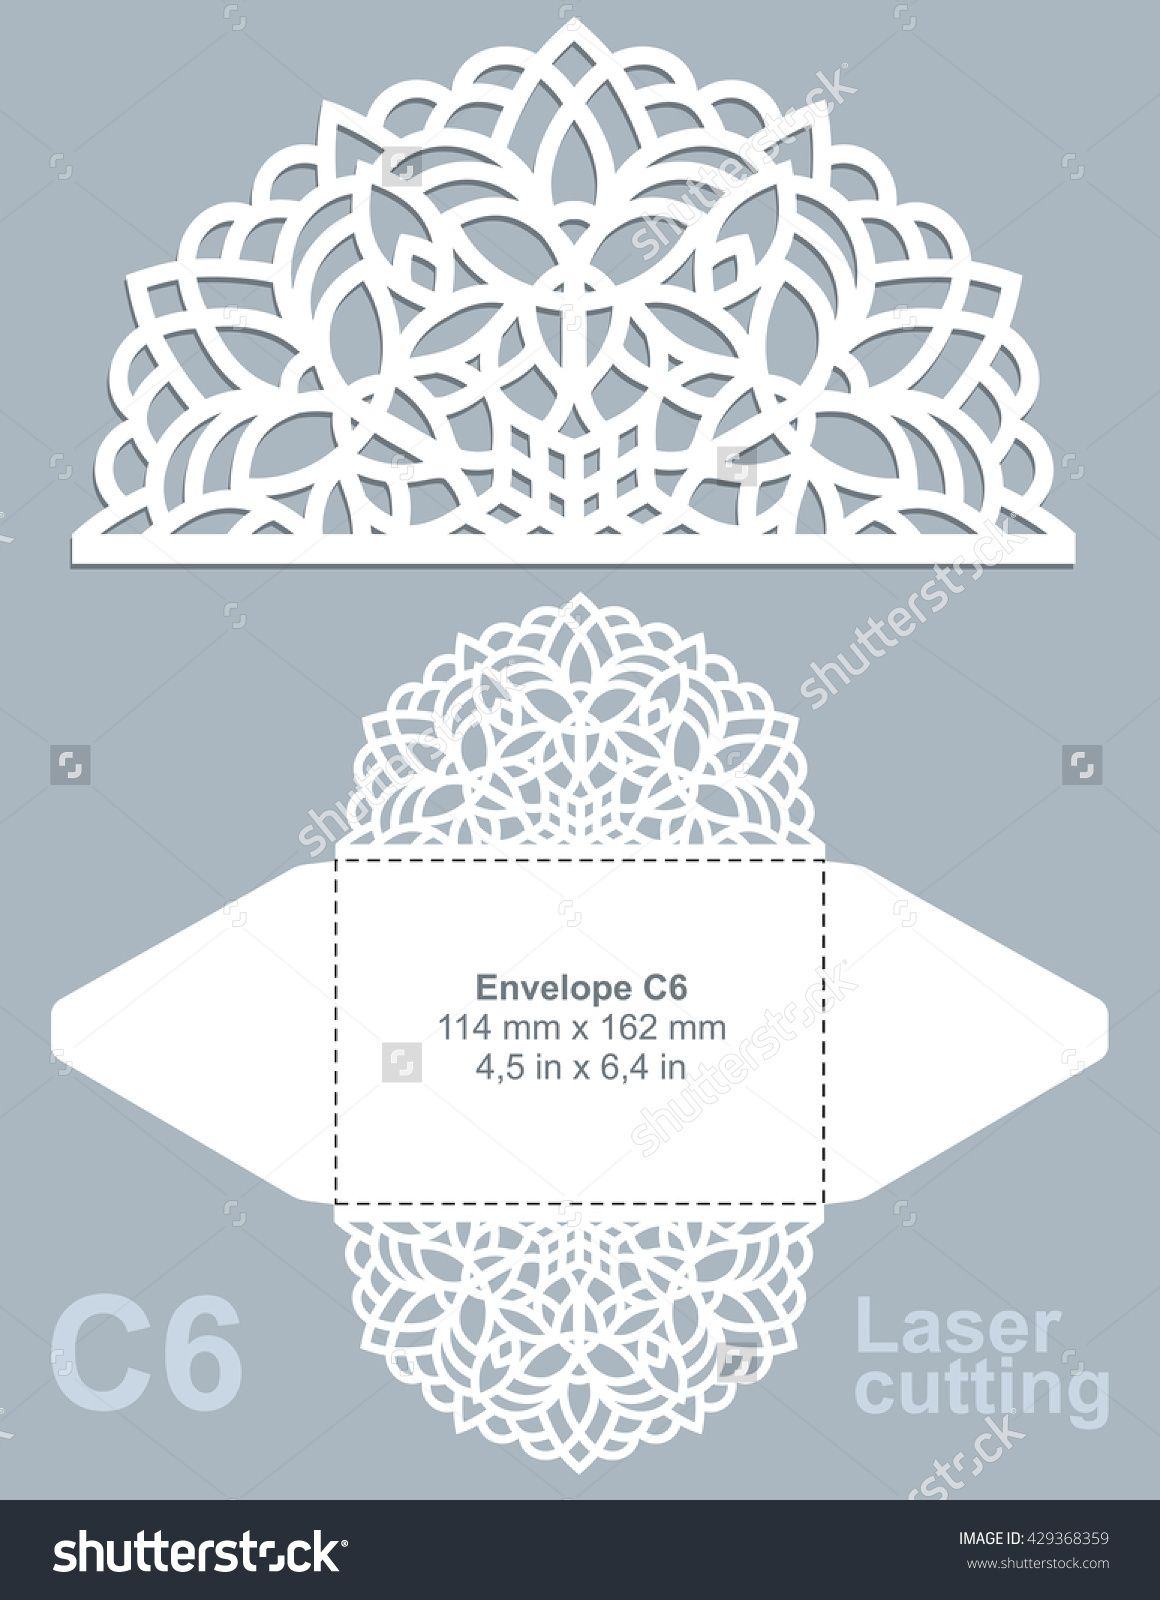 stock-vector-vector-die-cut-envelope-template-for-laser-cutting ...